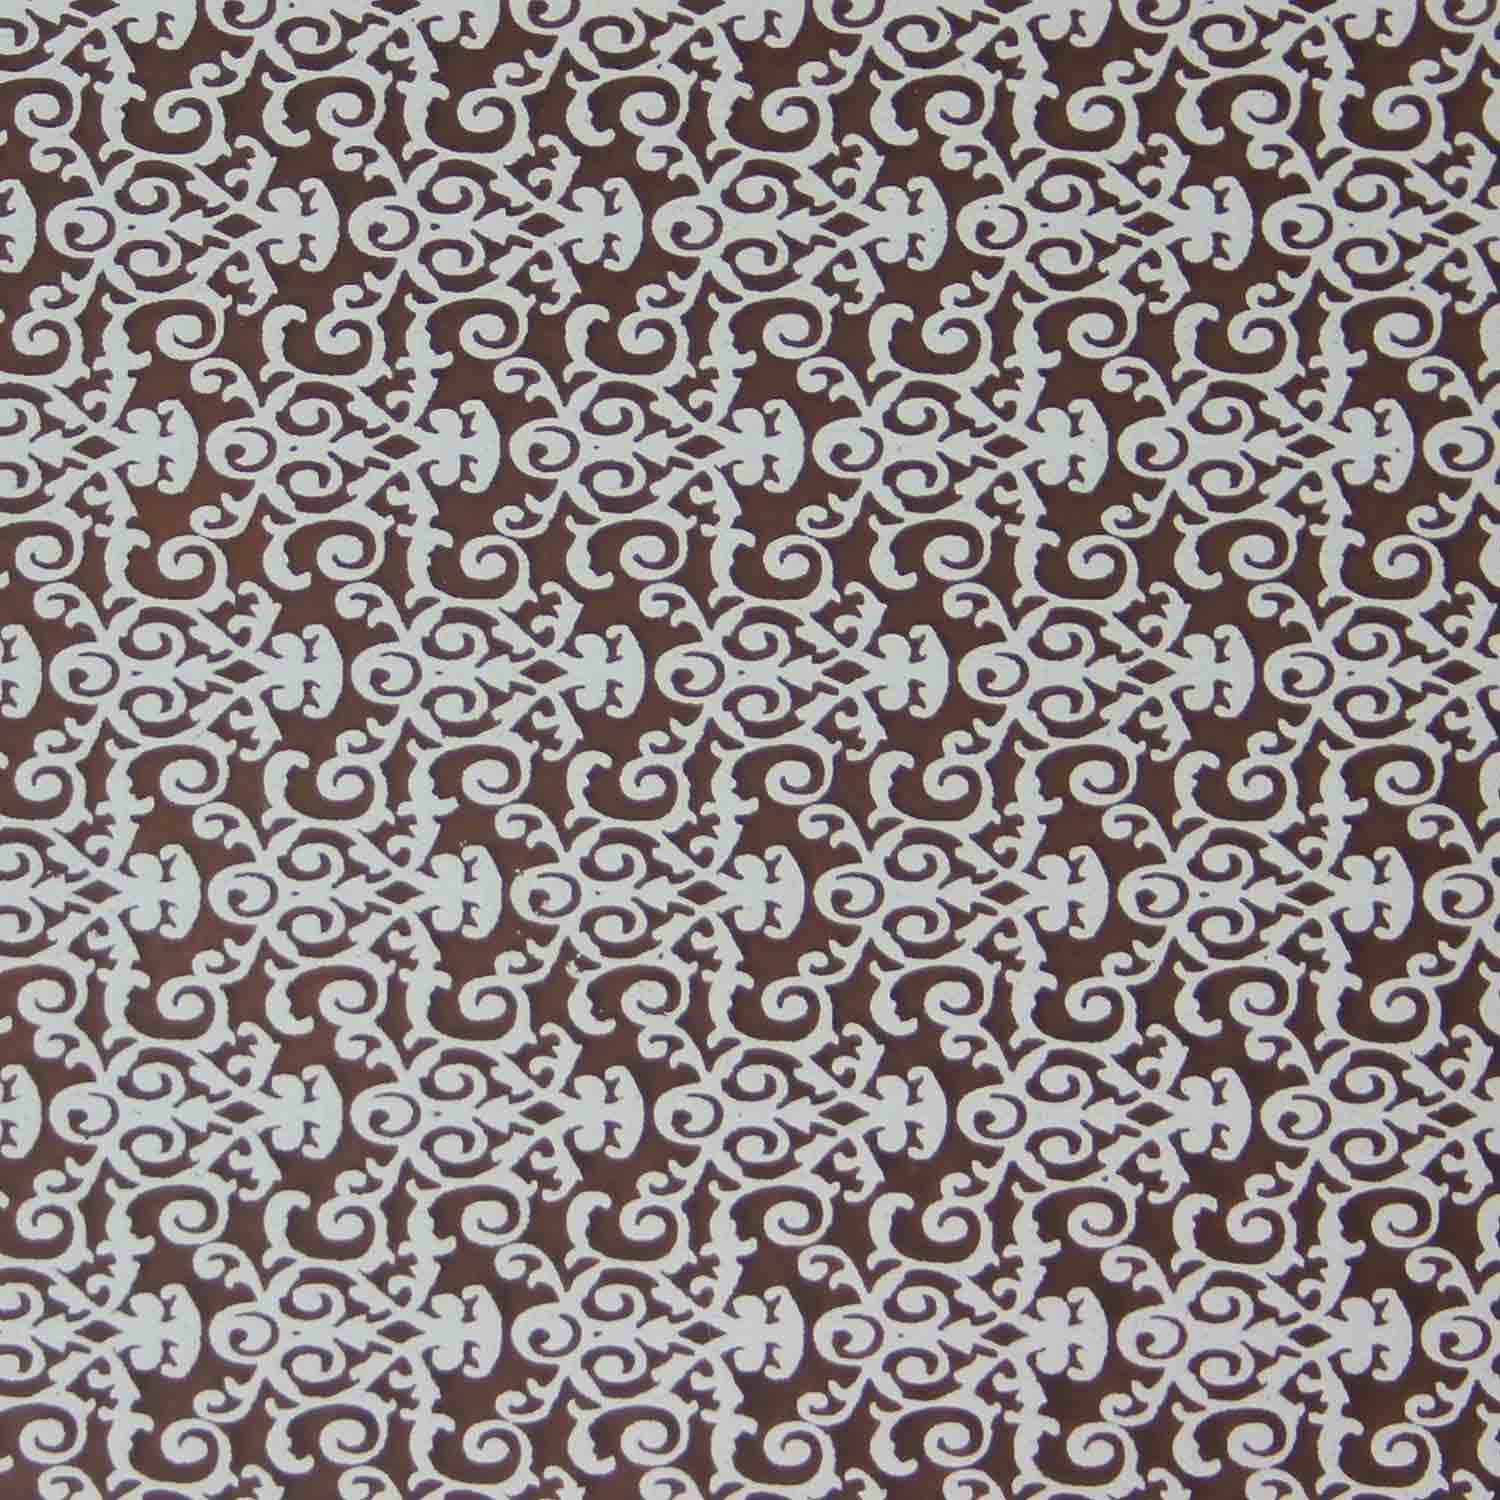 Chocolate Transfer Sheet - White Florentine